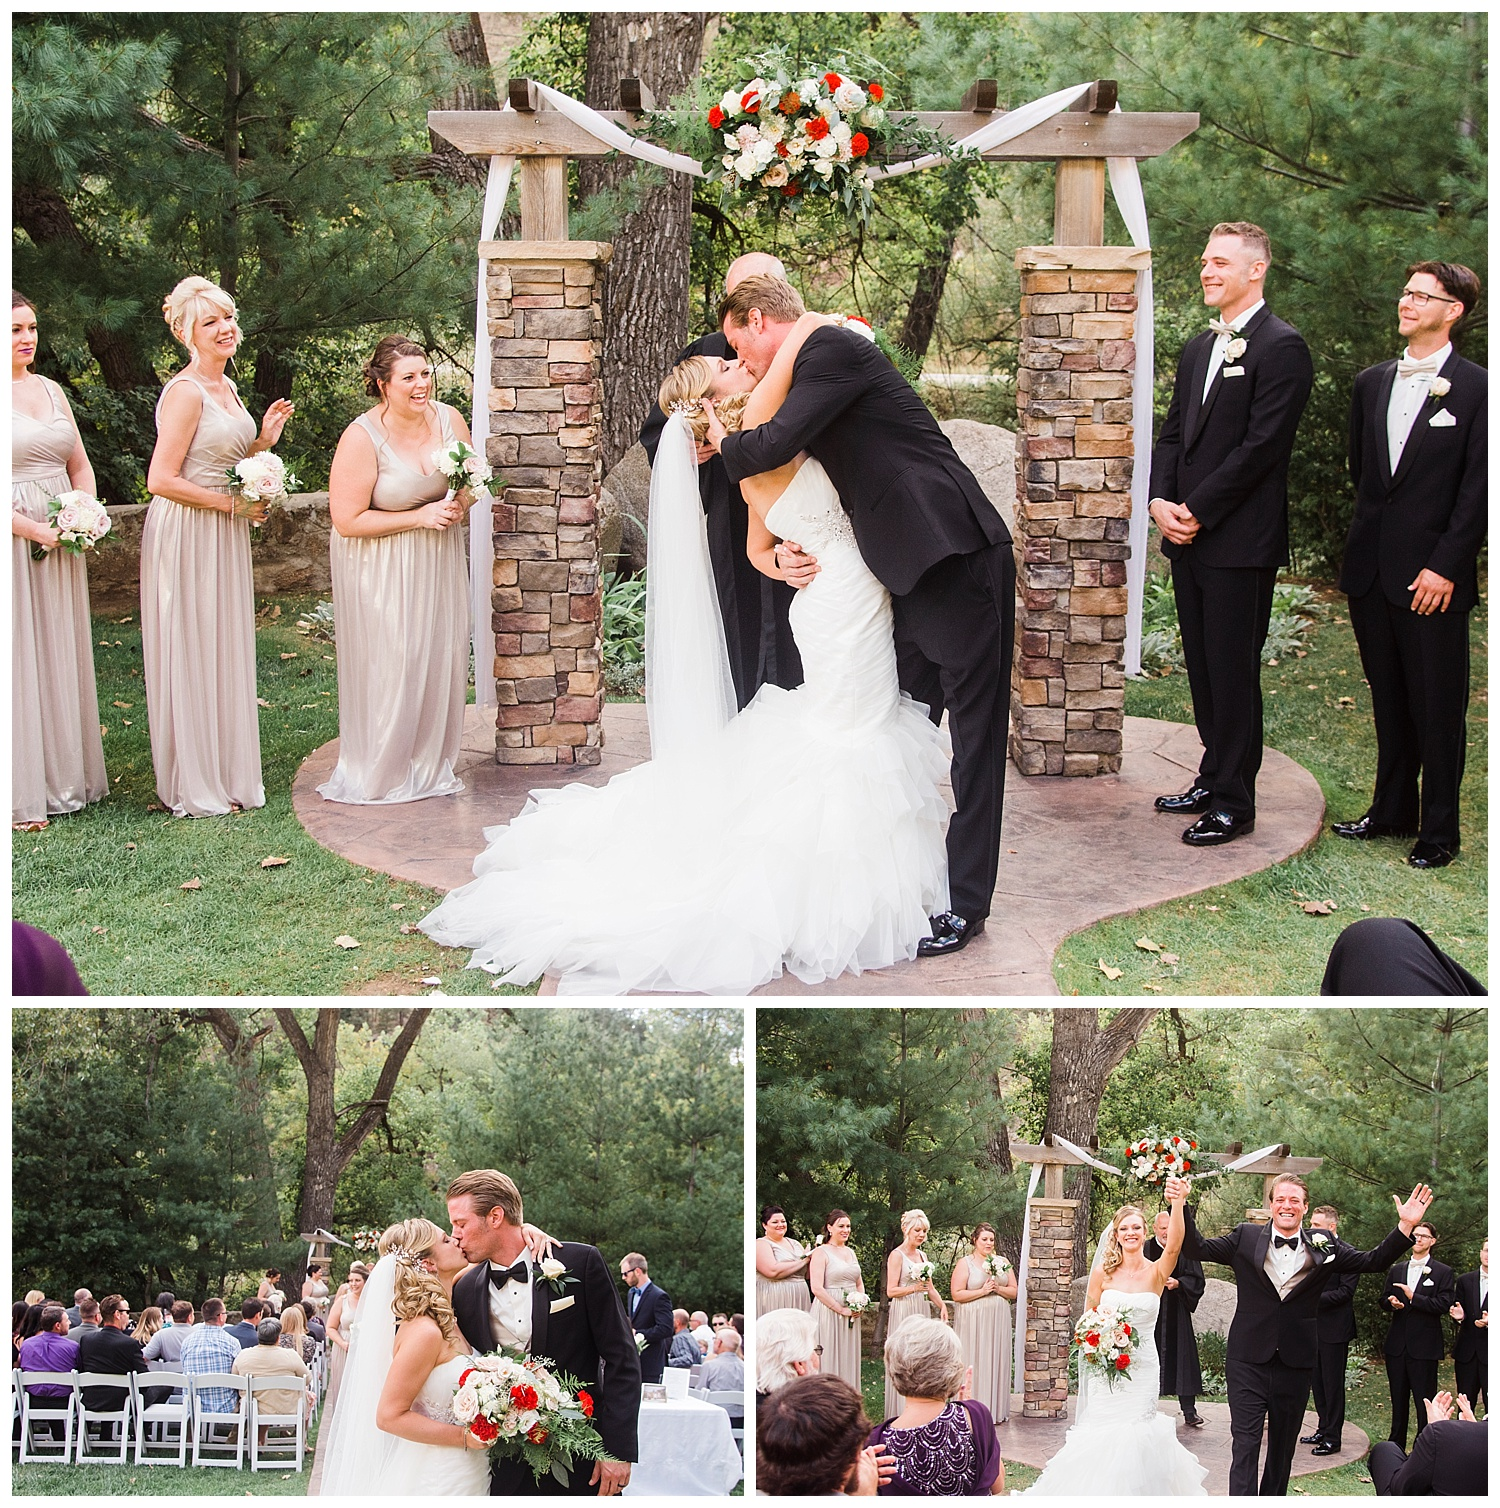 Wedgewood_Boulder_Creek_Wedding_Venue_Colorado_Photographer_Apollo_Fields_041.jpg